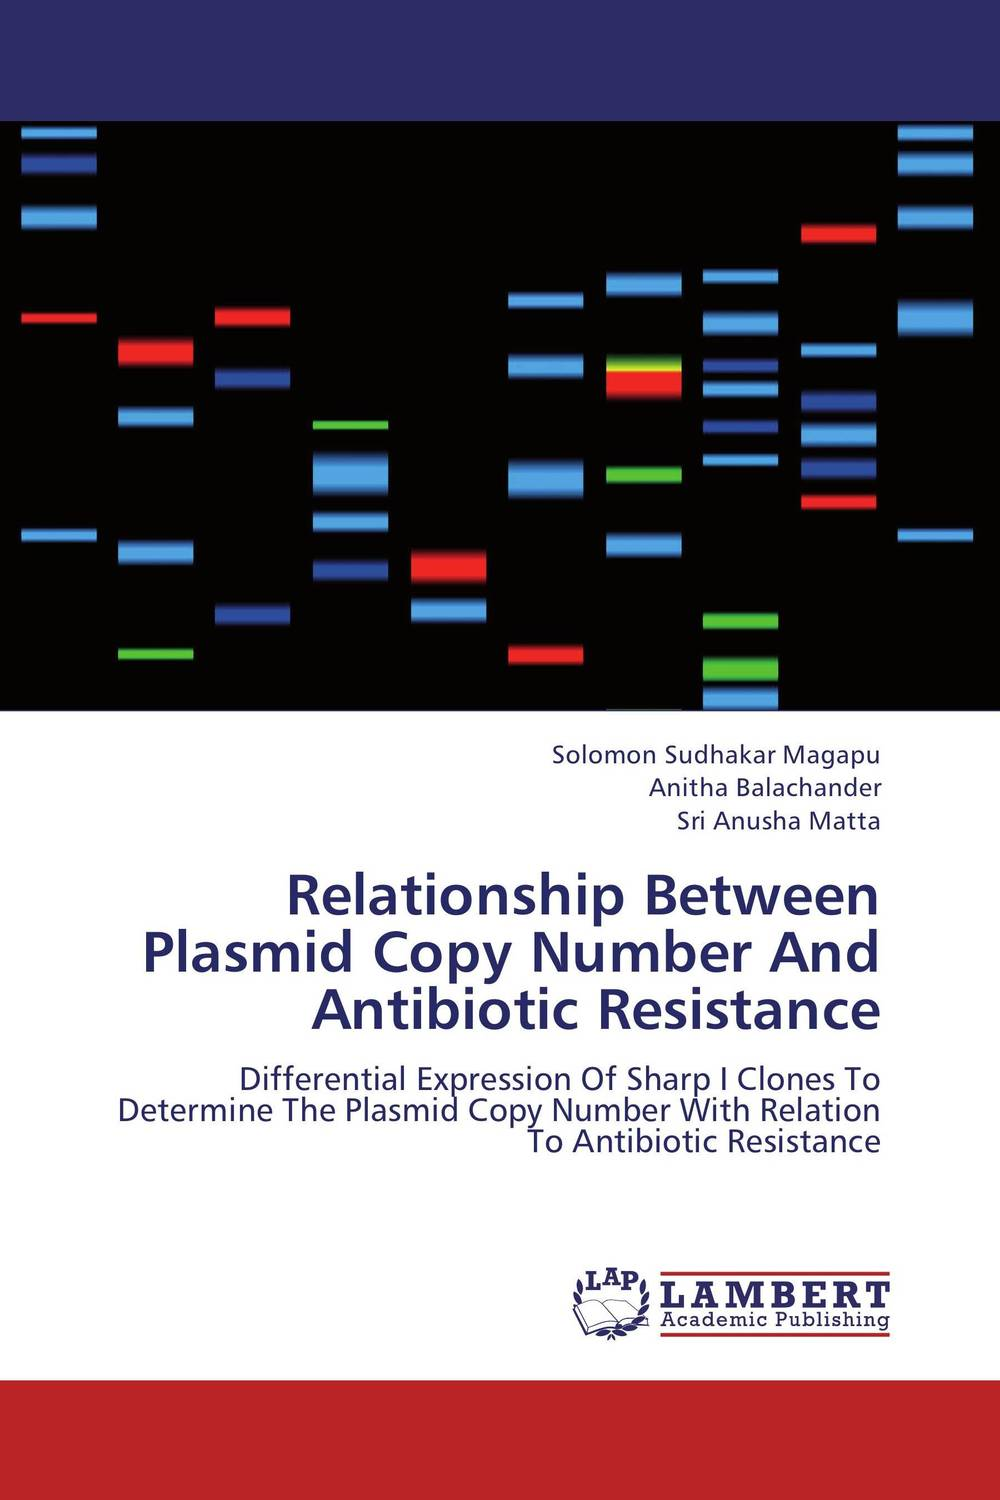 Relationship Between Plasmid Copy Number And Antibiotic Resistance bulb for barco overview mp50 r 80 r9842020 r9842440 bare lamp r98942020